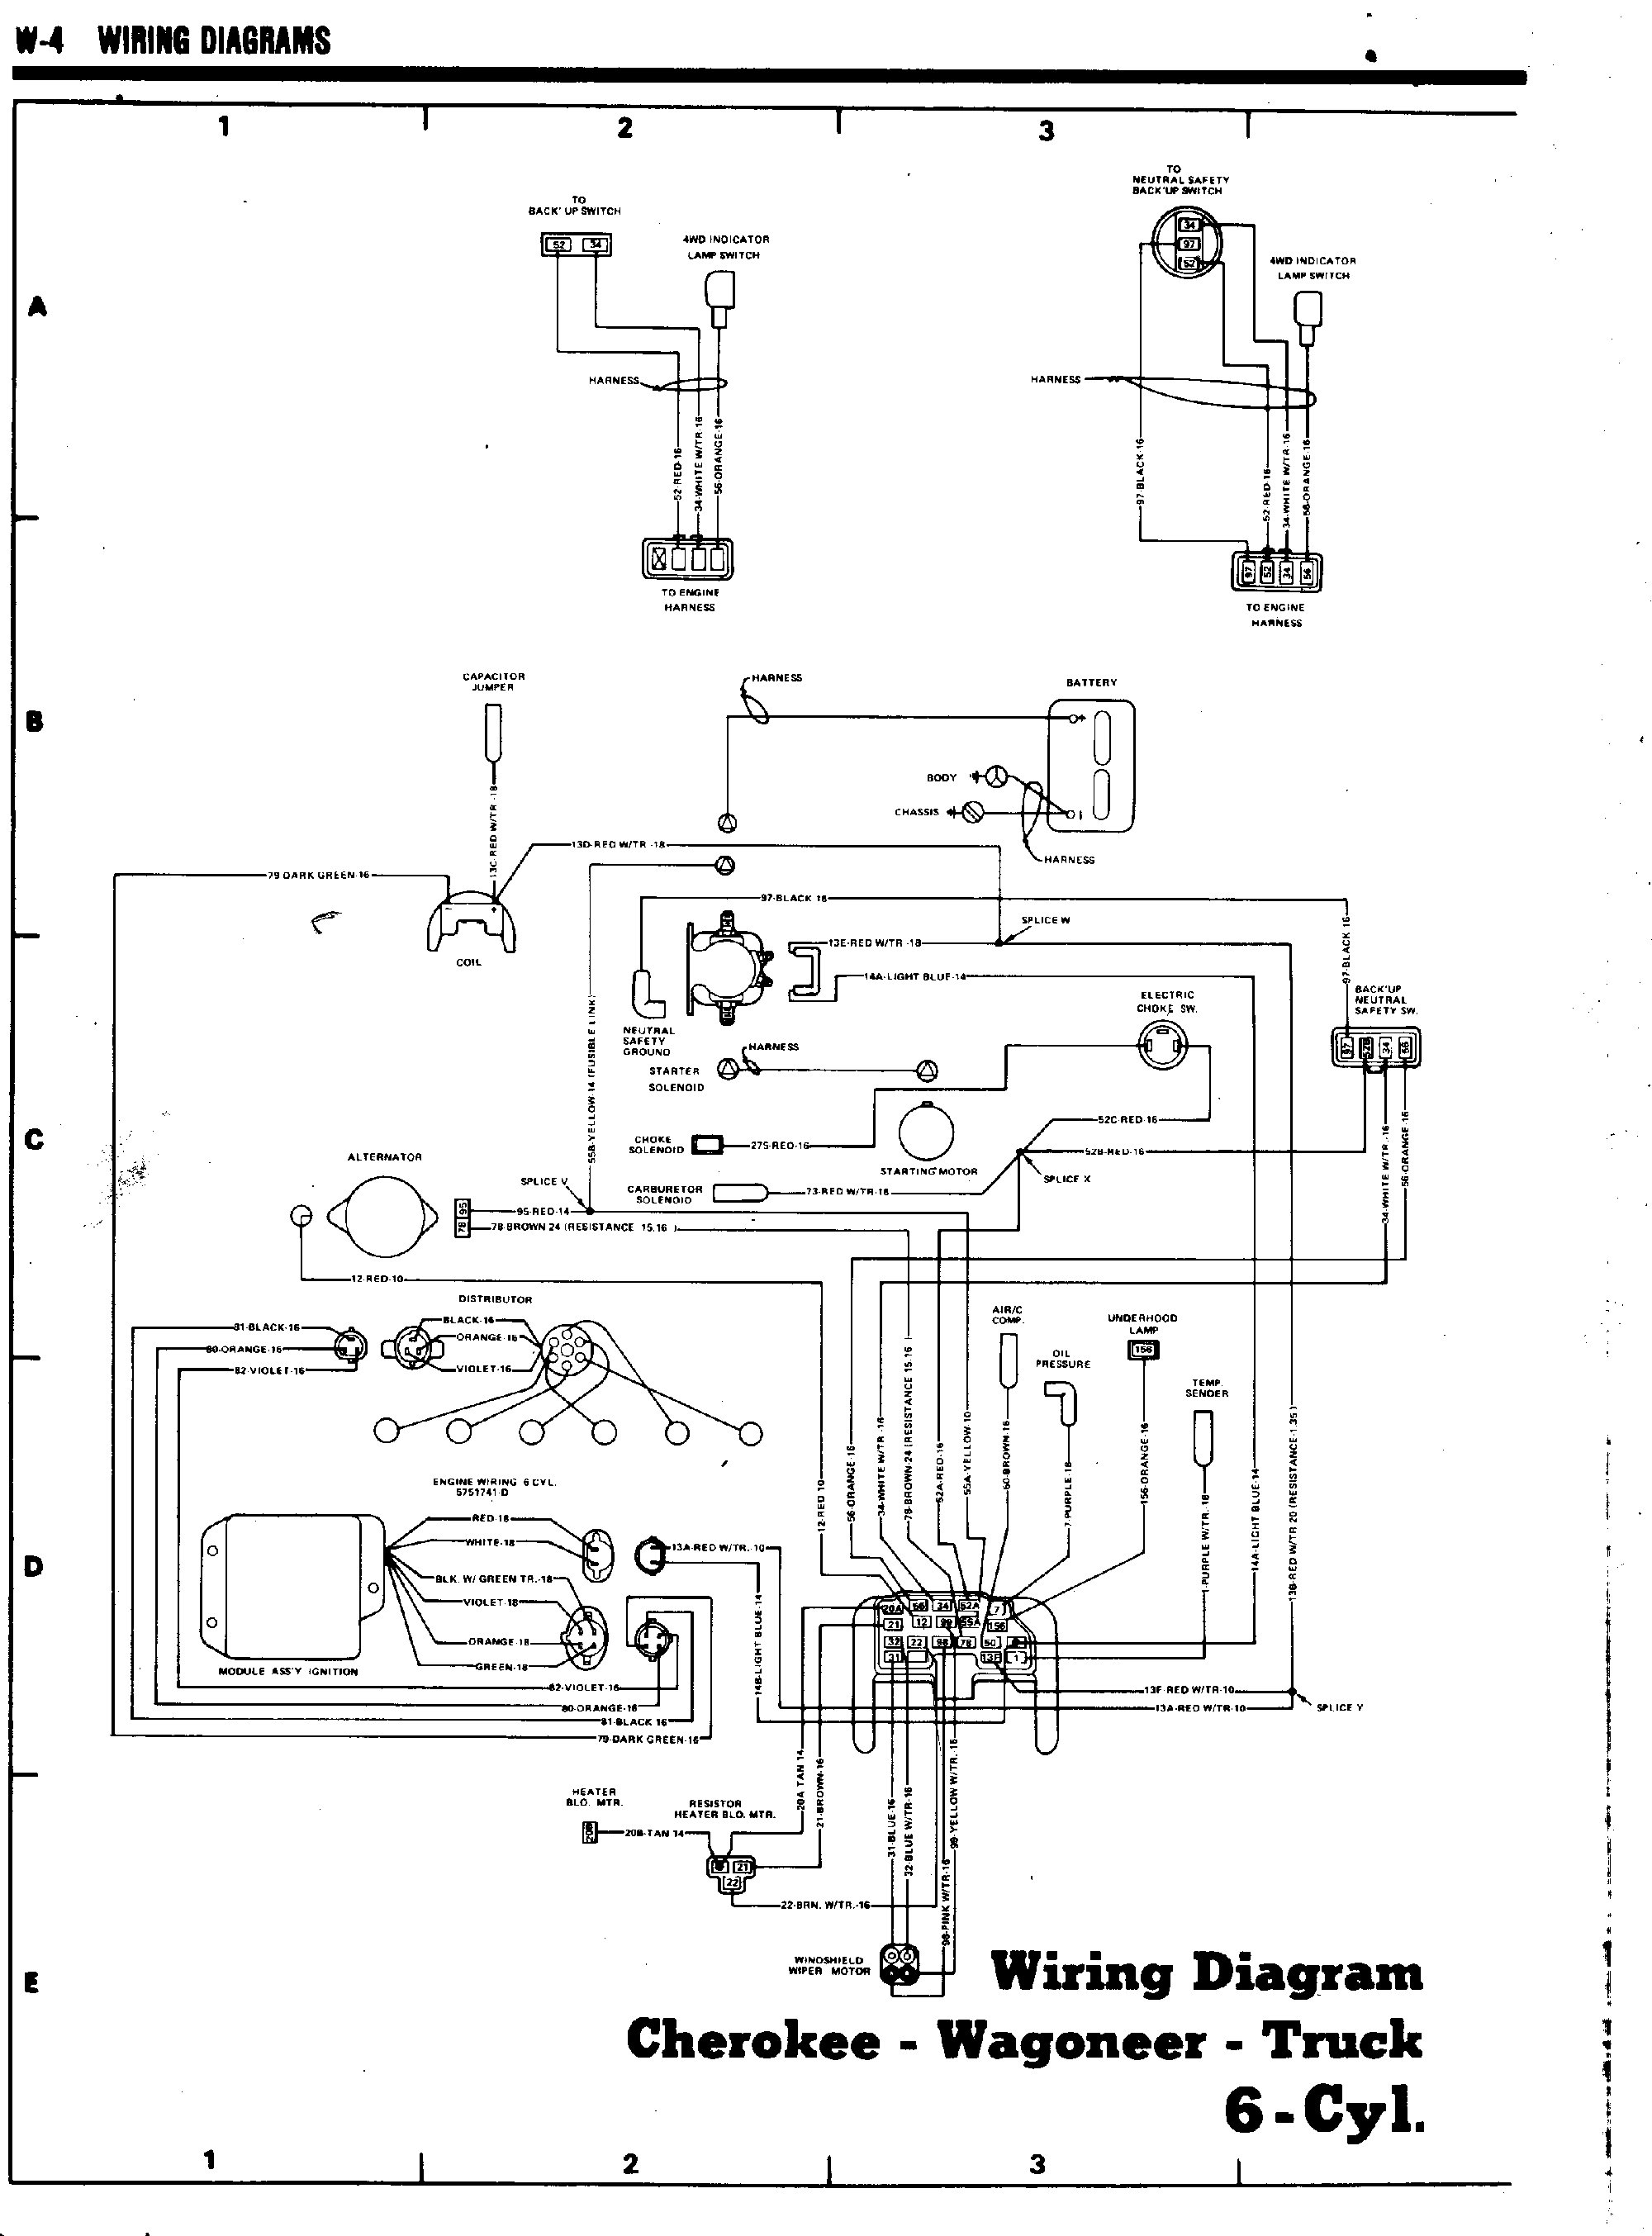 hight resolution of 1985 jeep j 20 wiring diagram wiring diagram advance 1985 jeep j 20 wiring diagram